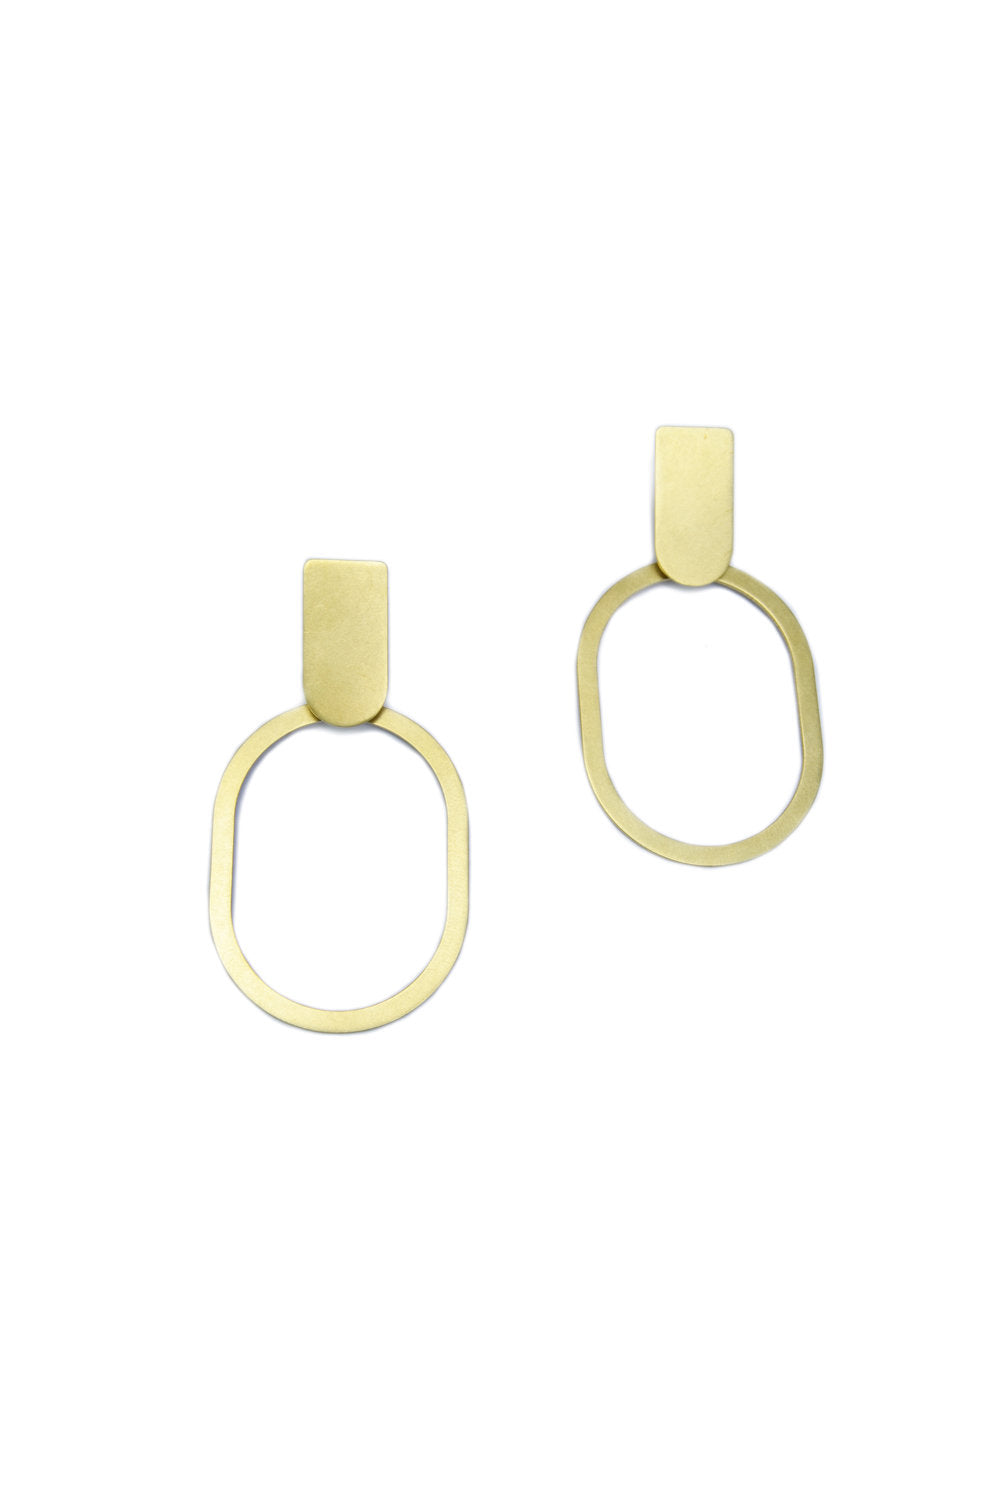 SOLID ARC AND OVAL EARRINGS